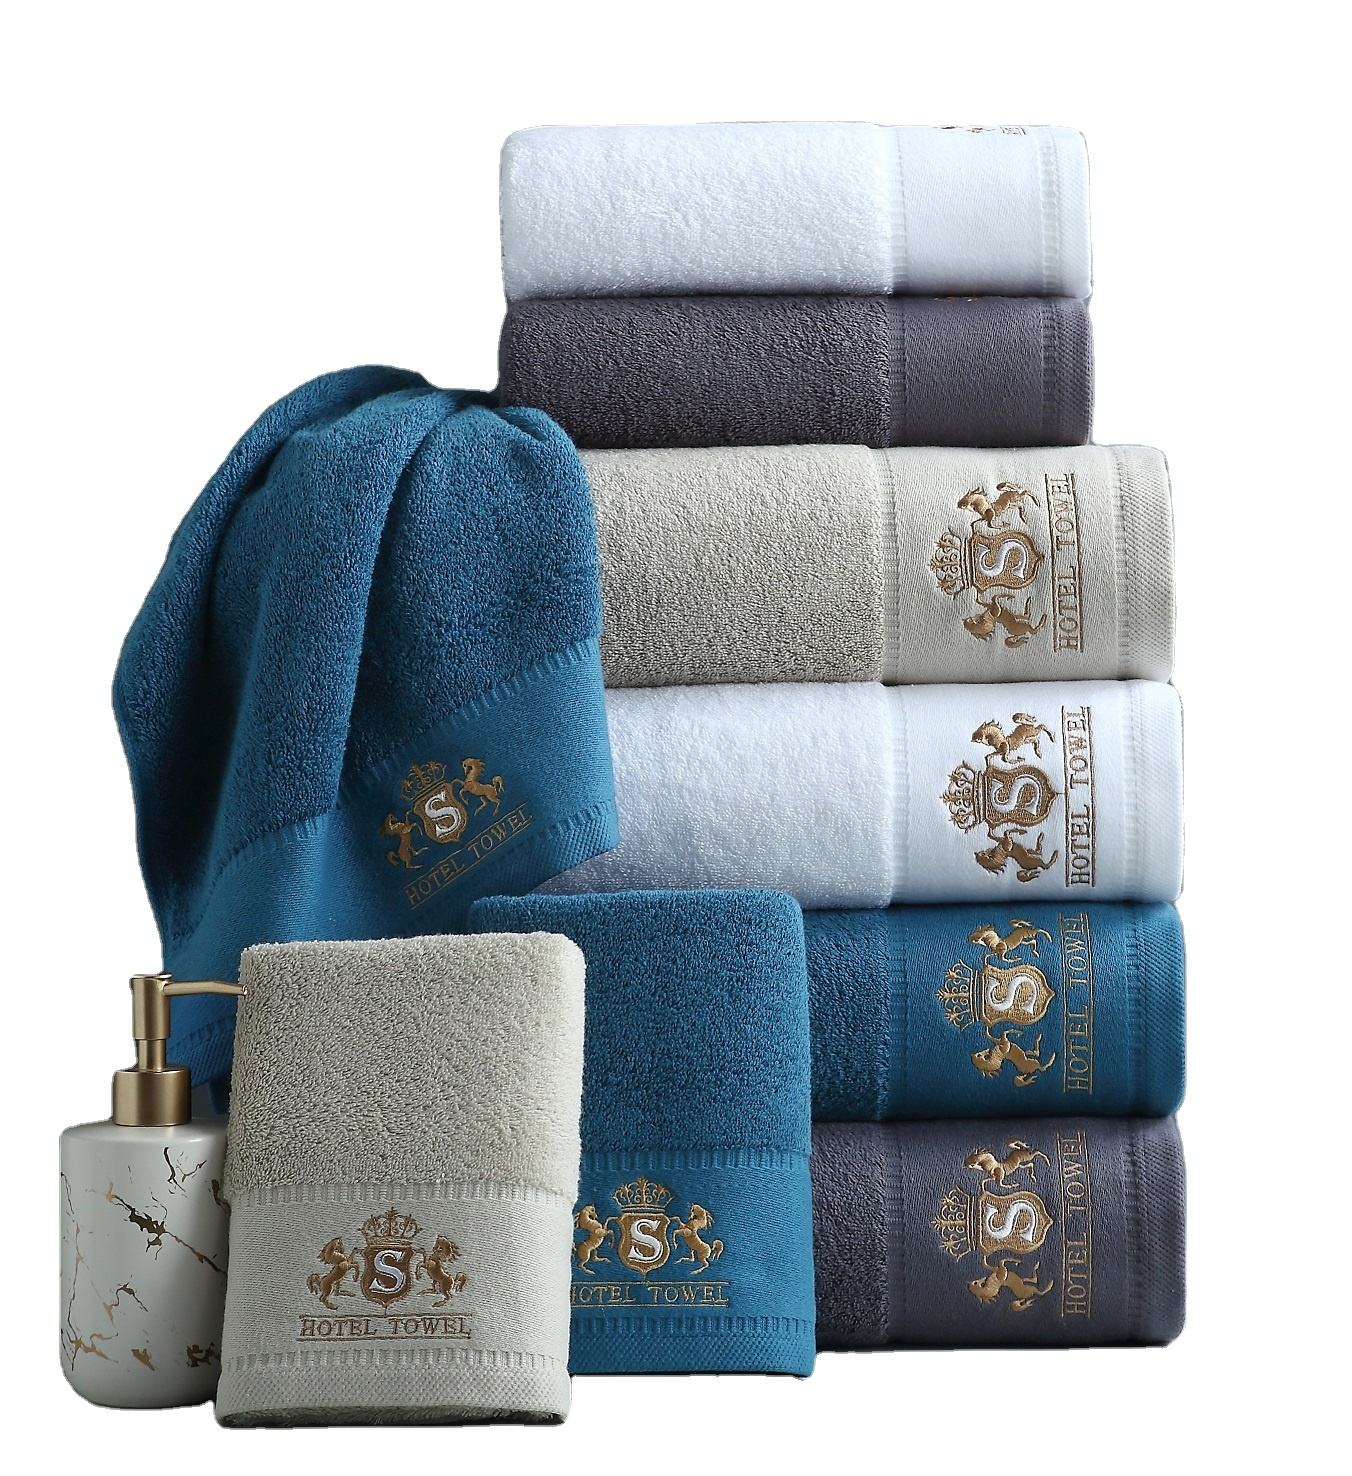 6 Piece Luxury Combed Cotton Bath Towel Gift Set